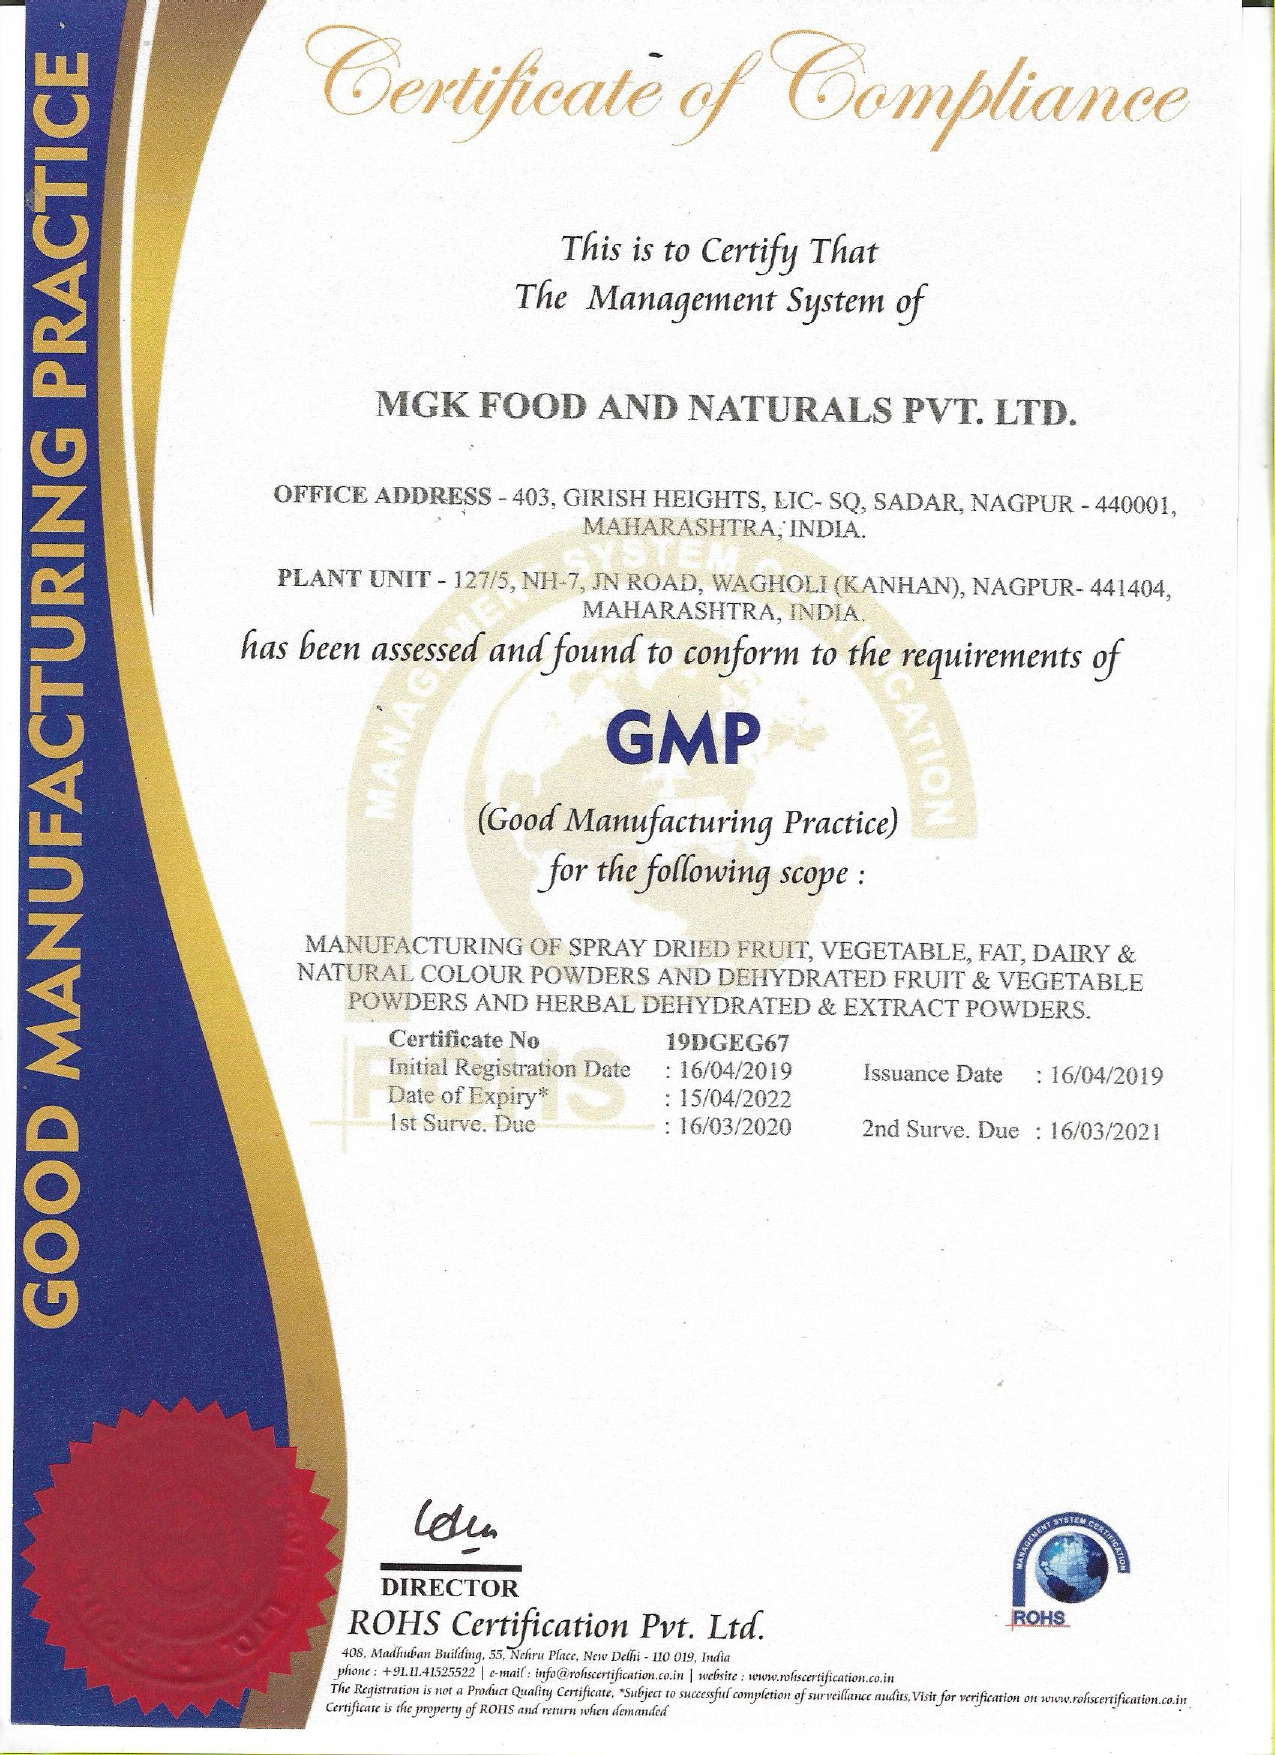 GMP Certificate - MGK Food And Naturals Pvt  Ltd  from